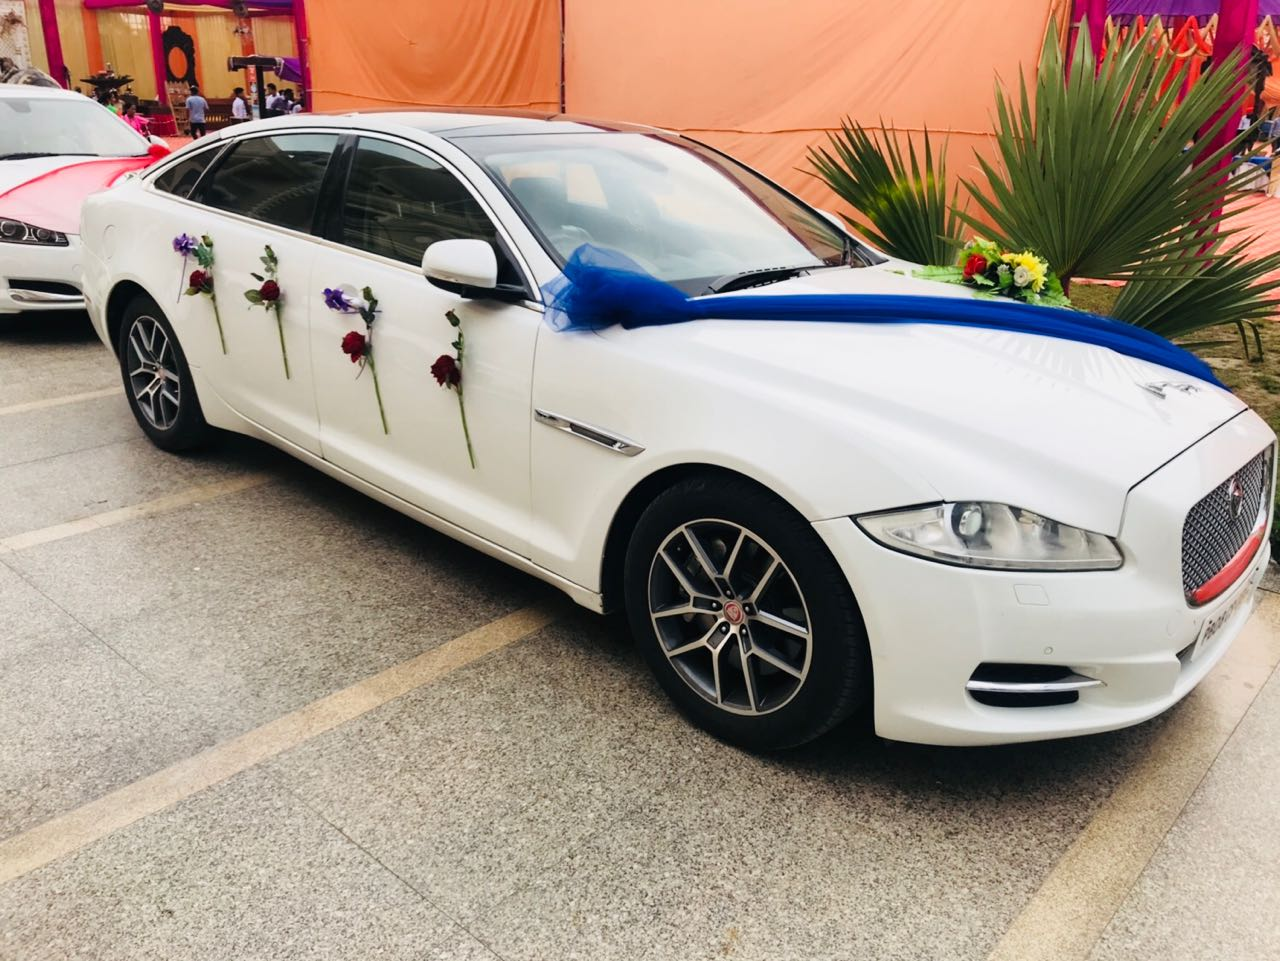 JAGUAR XJL BOOK FOR WEDDING/RECEPTION JUST DIAL 9888930002